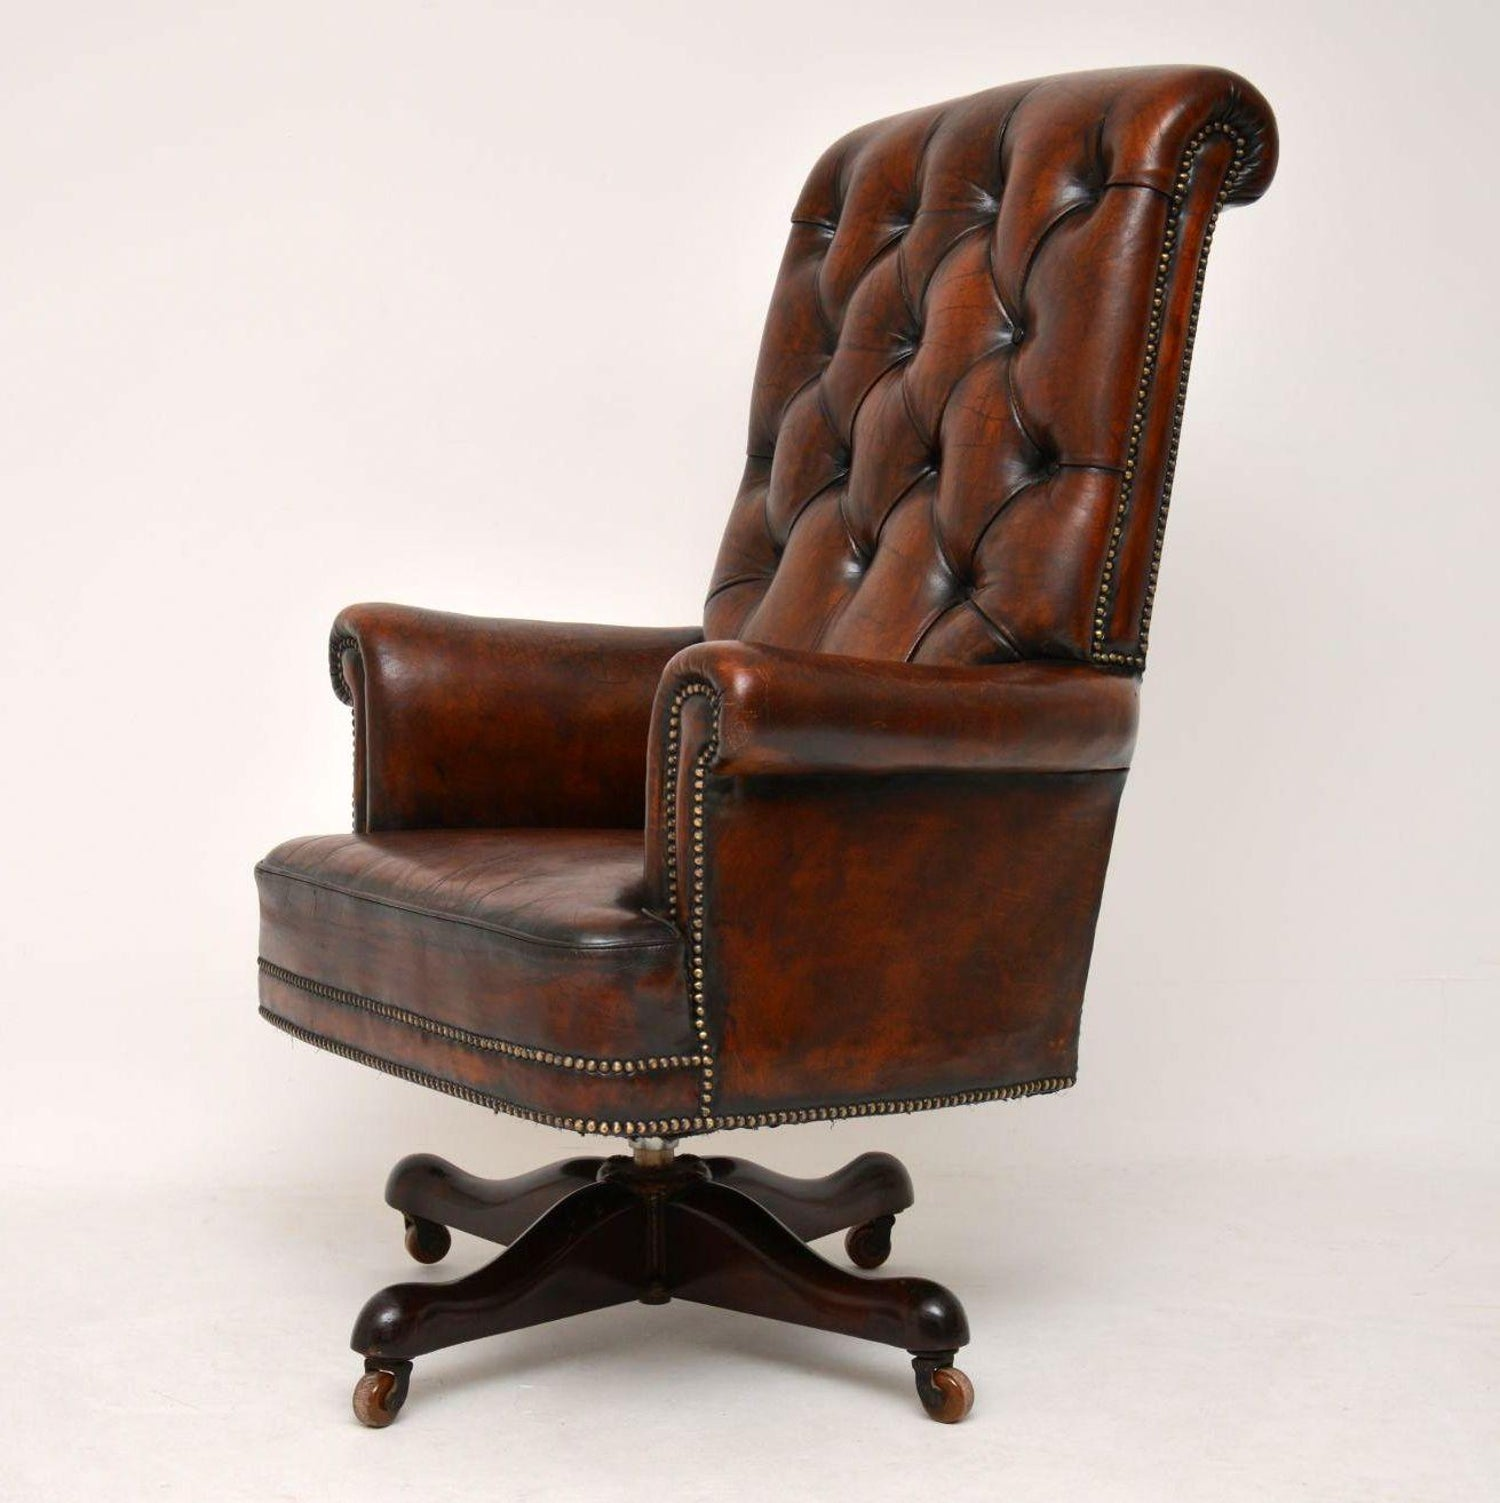 Enjoyable Antique Leather And Mahogany Swivel Desk Chair At 1Stdibs Pabps2019 Chair Design Images Pabps2019Com